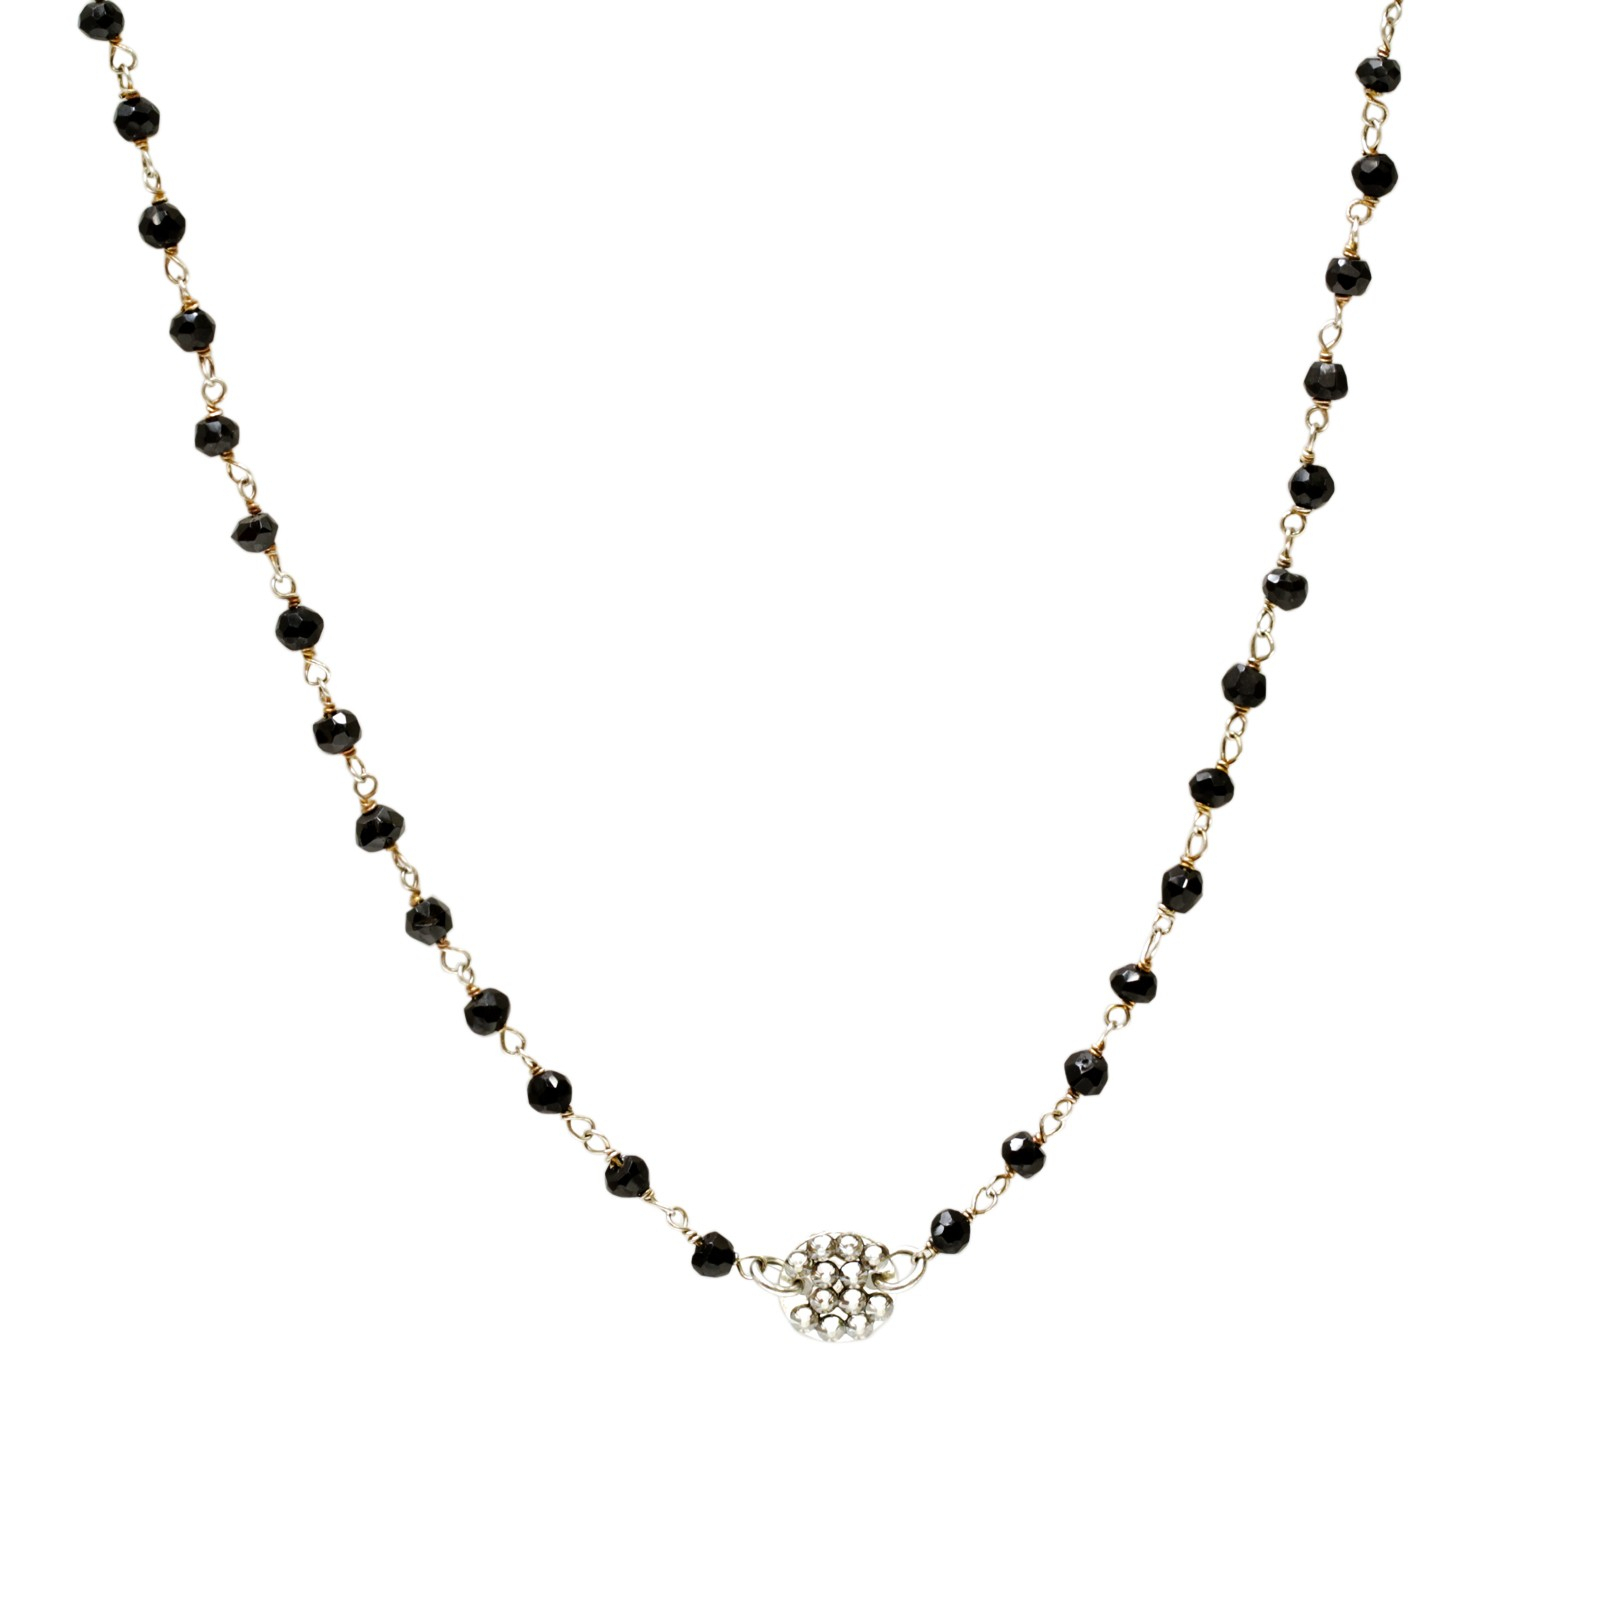 Roni Blanshay Iolite Beaded With Pave Crystal Disc Necklace With Regard To Most Recent Beads & Pavé Necklaces (View 16 of 25)